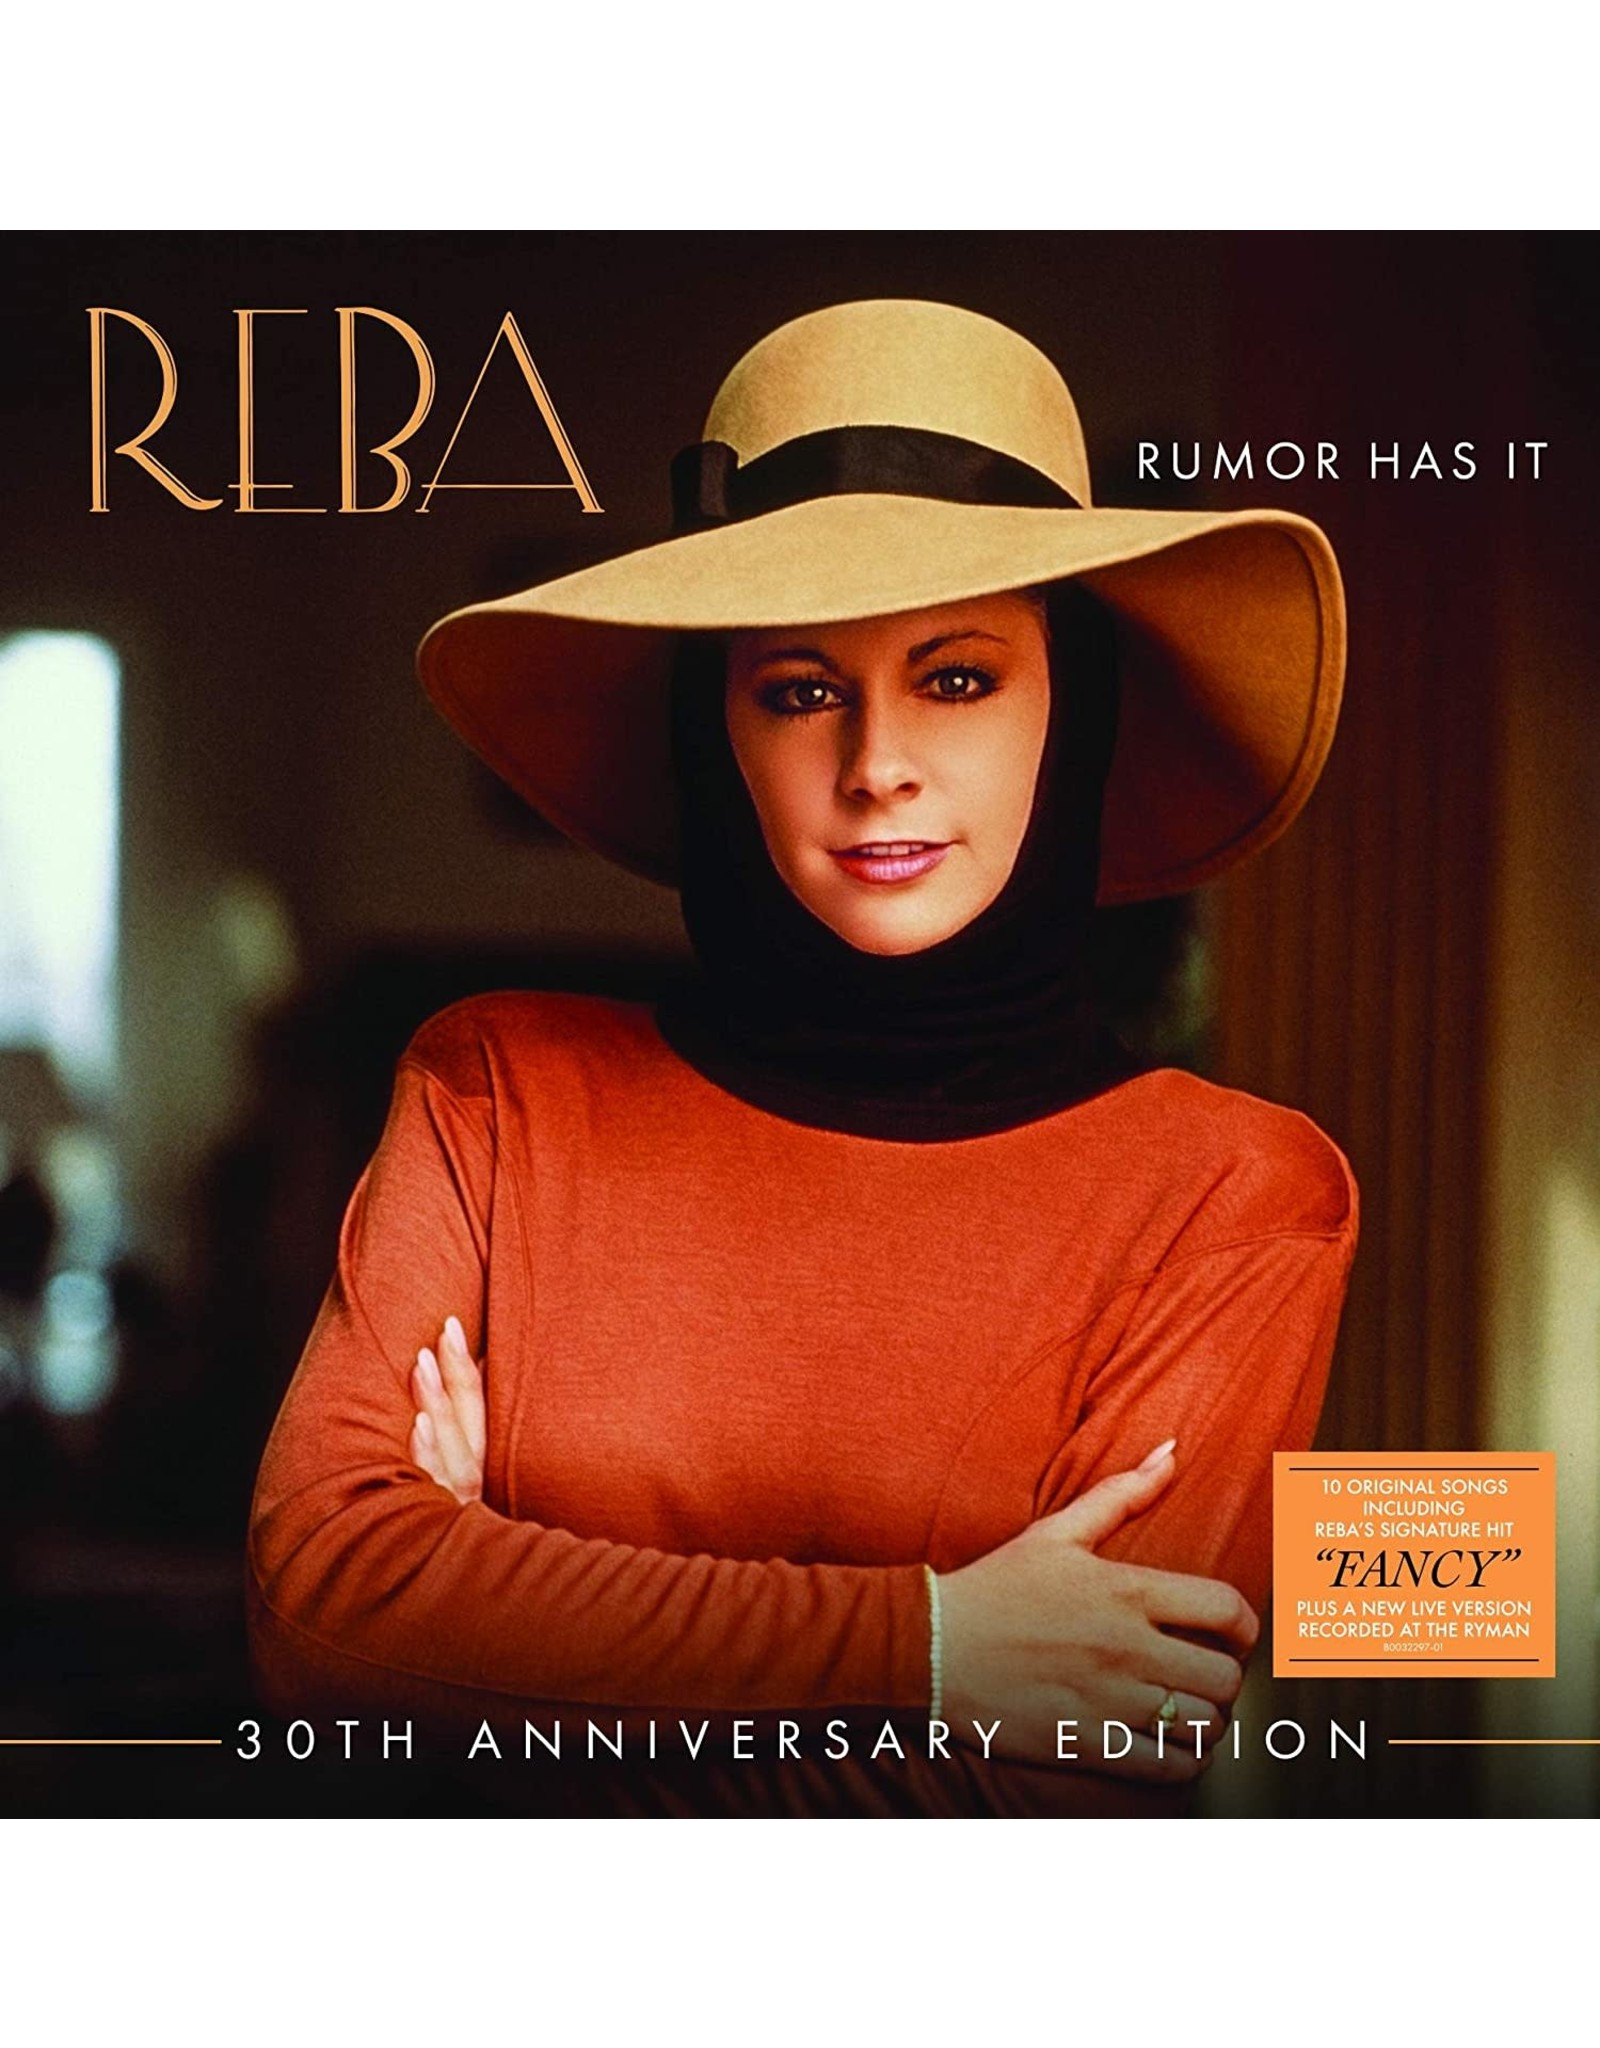 Reba McEntire - Rumor Has It (30th Anniversary)